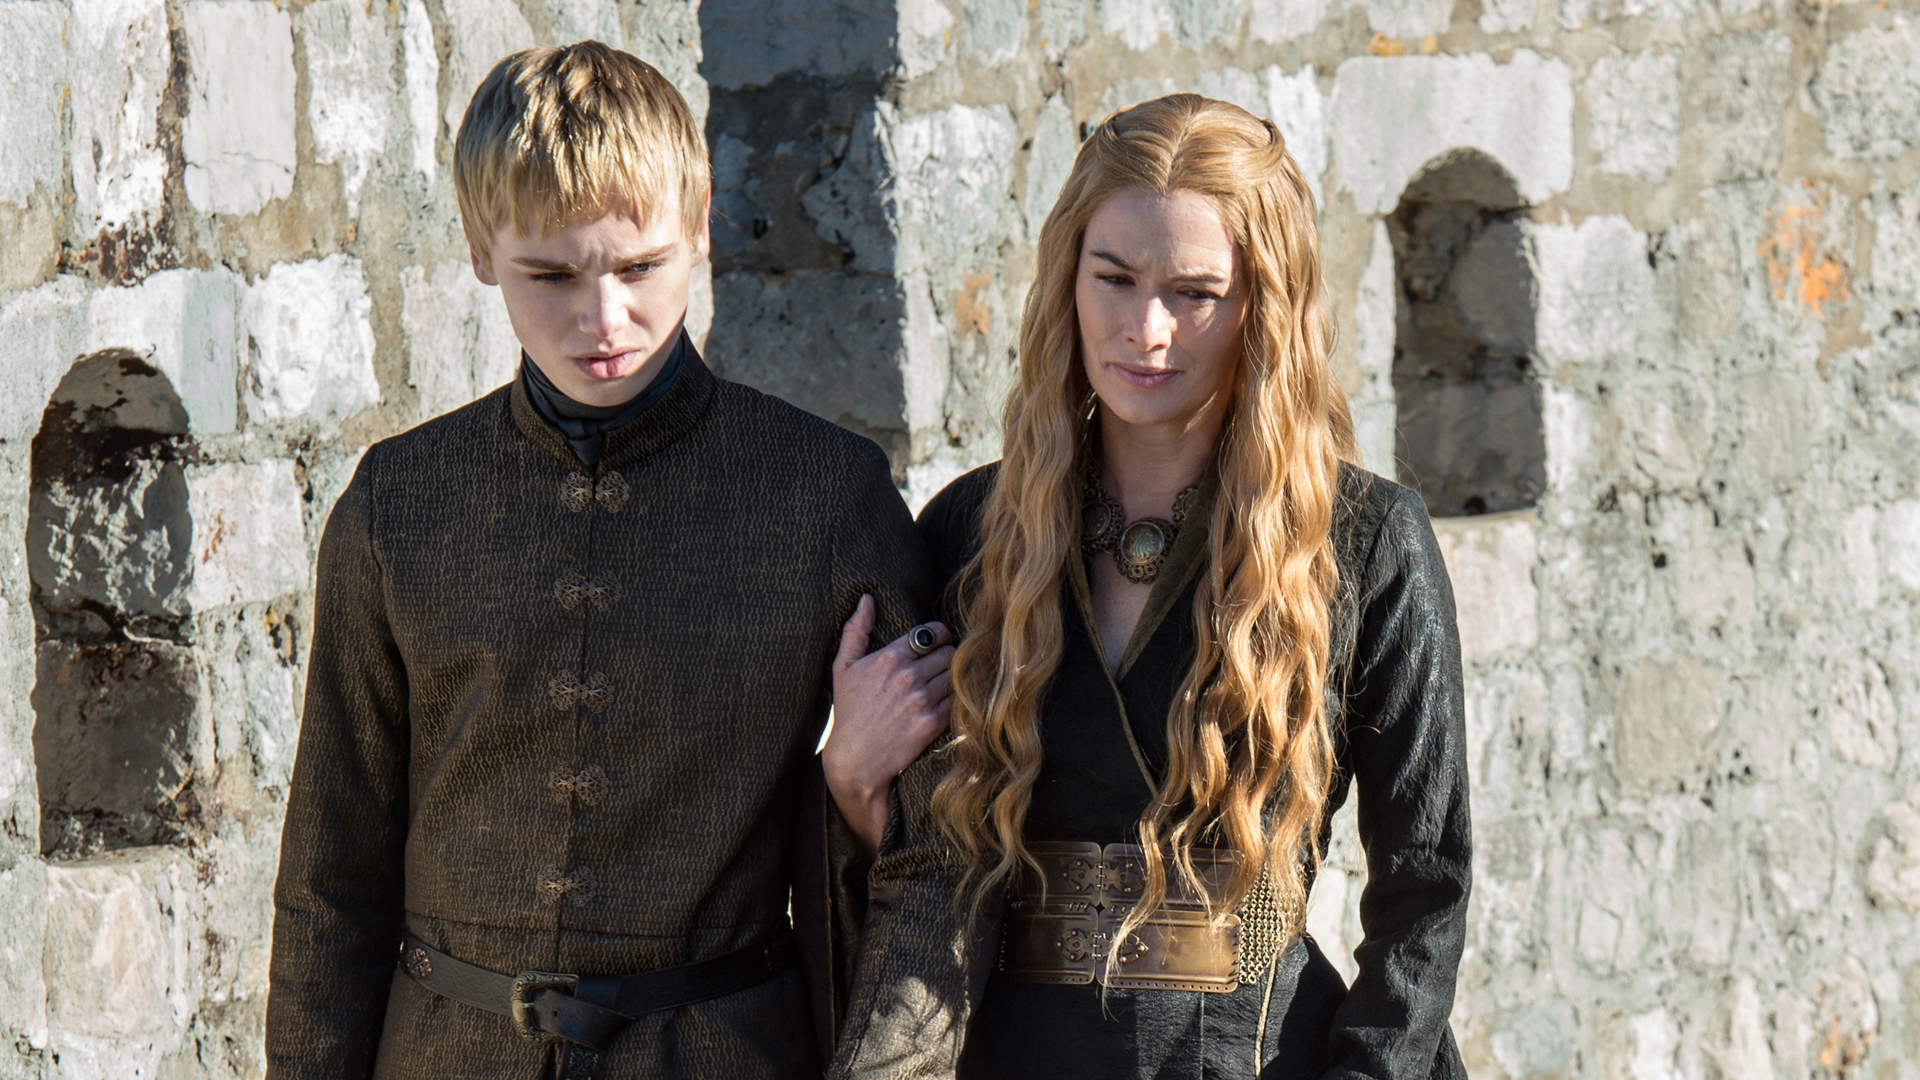 cersei-and-tommen-cersei-lannister-38426219-1920-1080.jpg